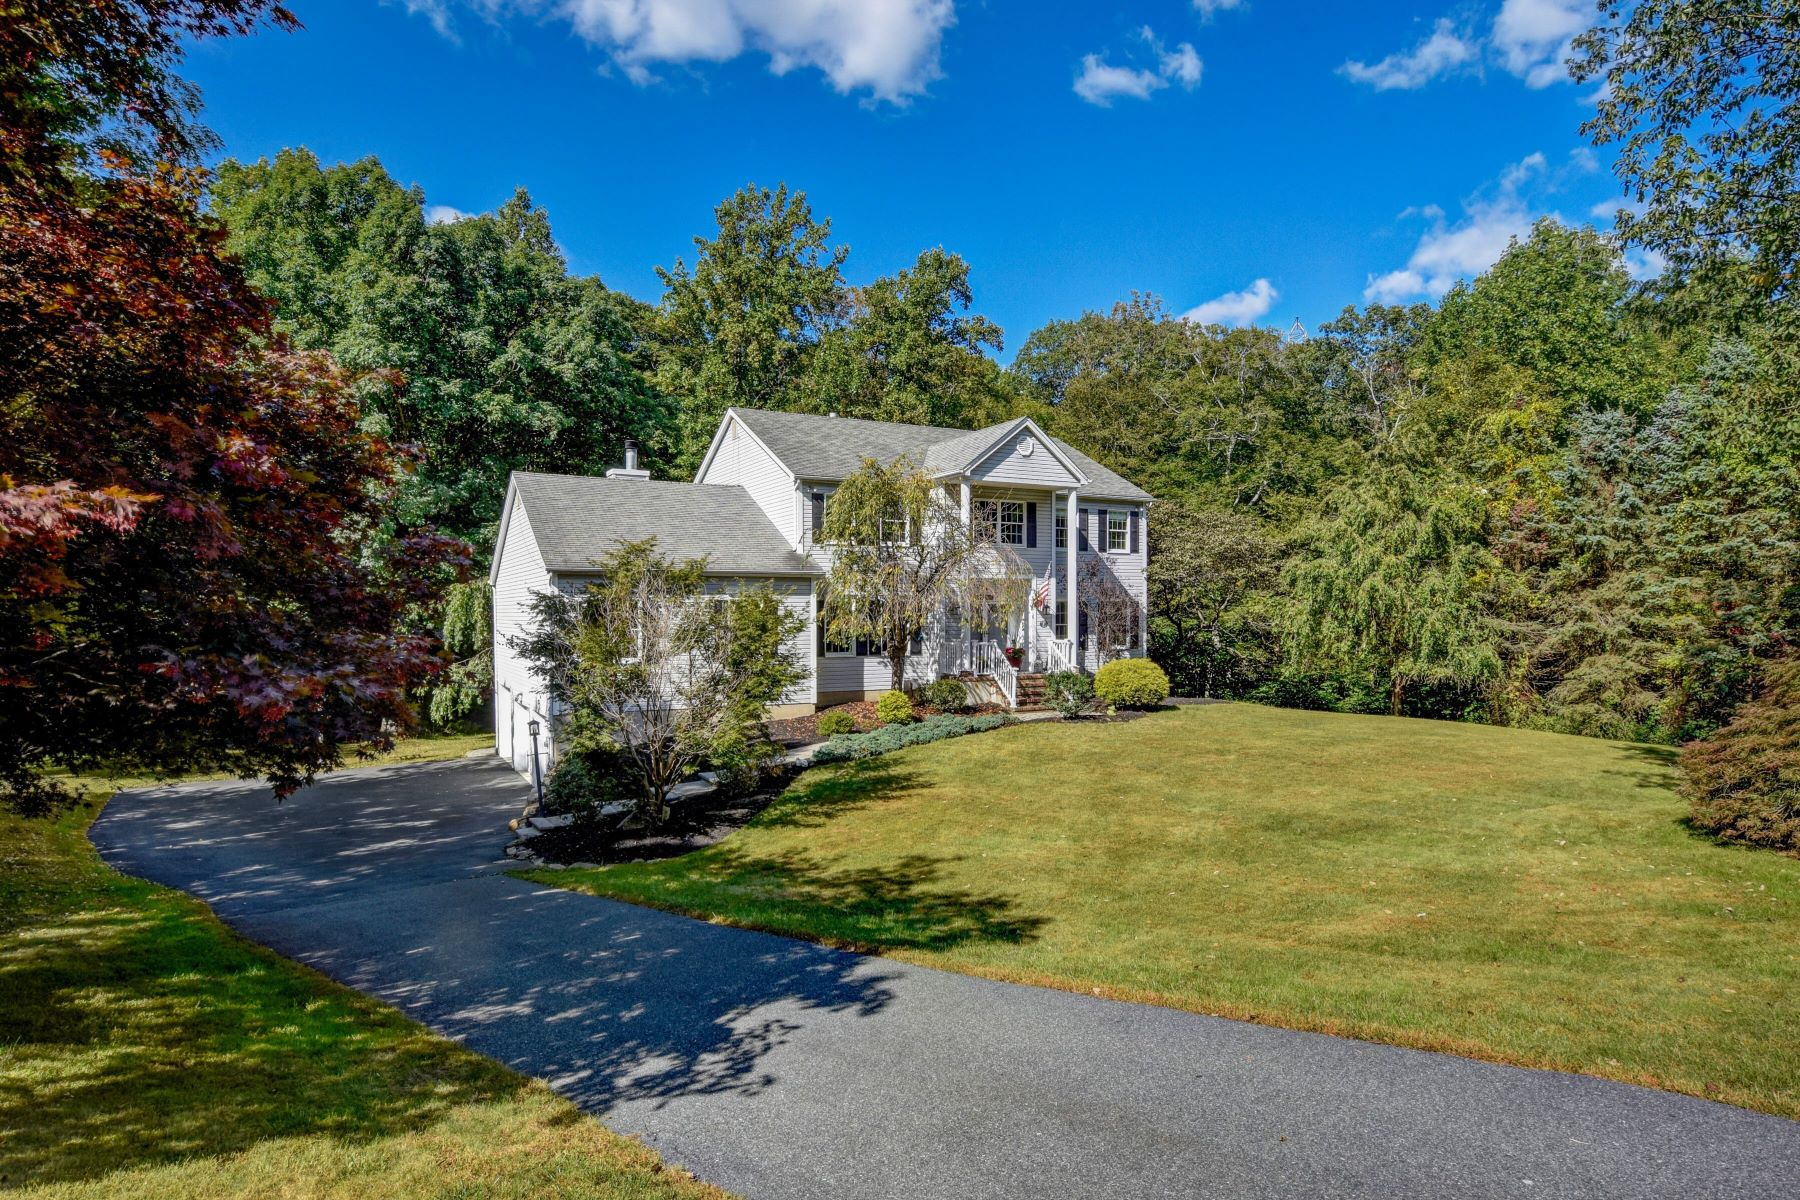 Single Family Homes for Sale at Traditional Center Hall Colonial 34 Wilkeshire Blvd Randolph, New Jersey 07869 United States